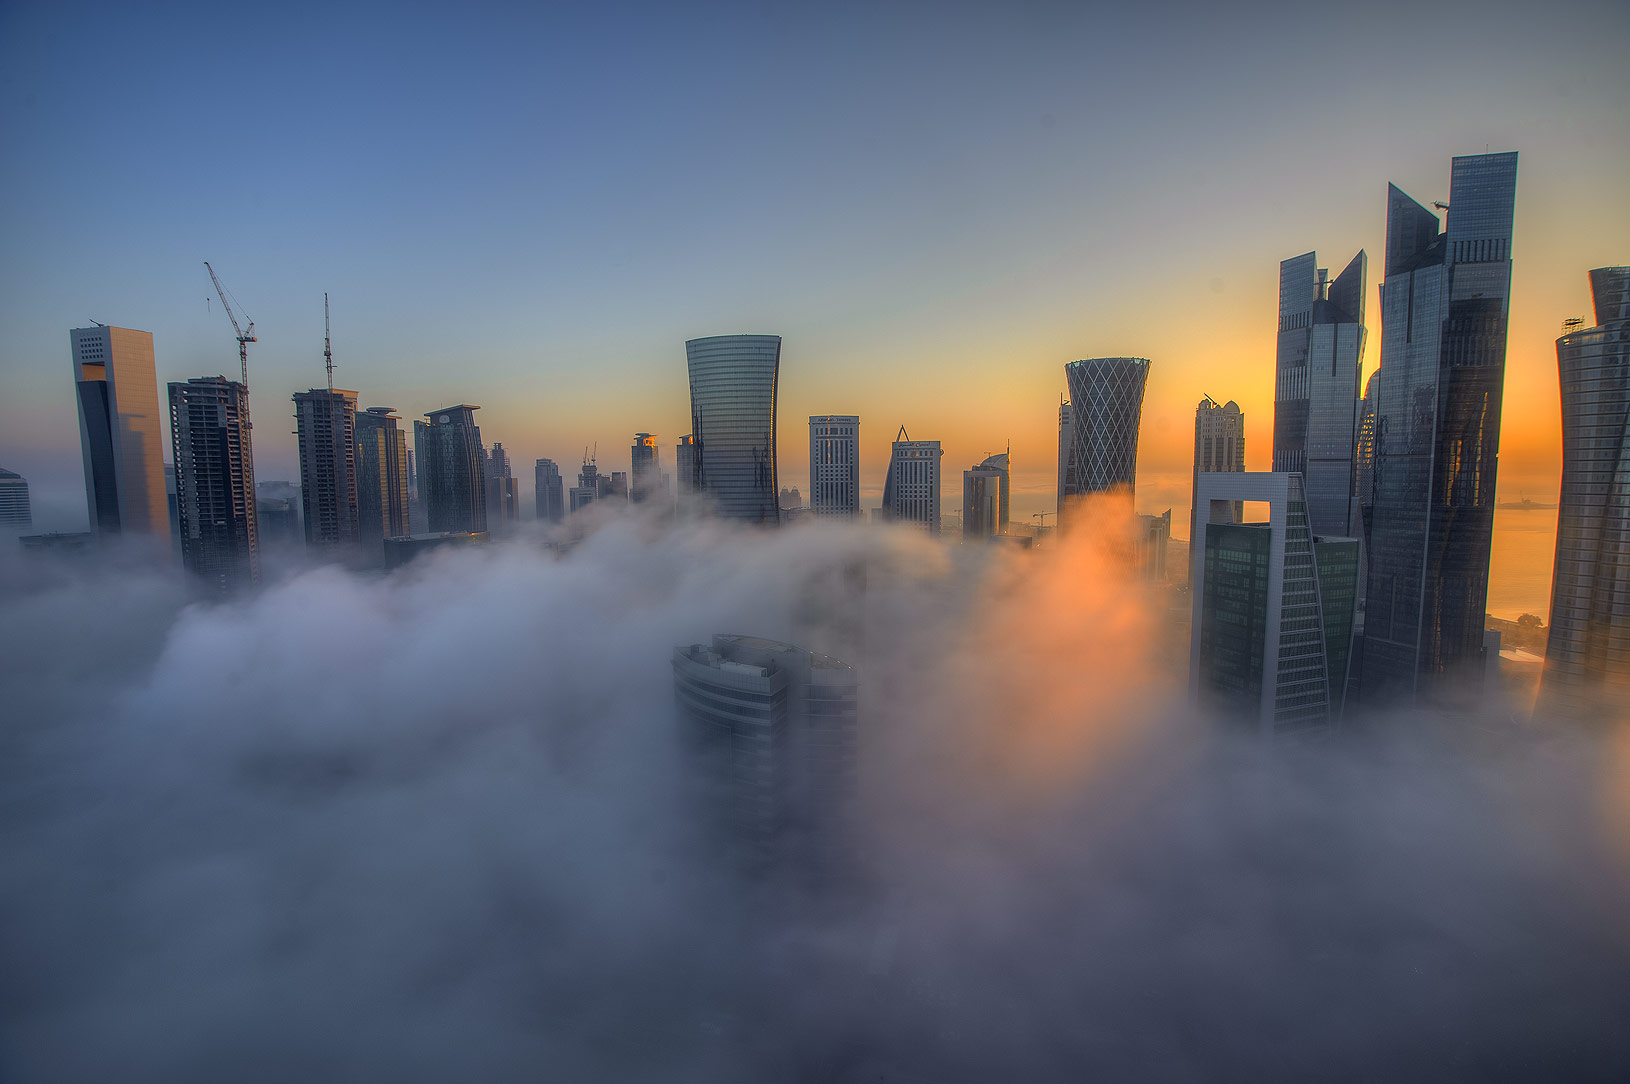 Sunrise through towers in fog to the east from a...Dareen Tower in West Bay. Doha, Qatar